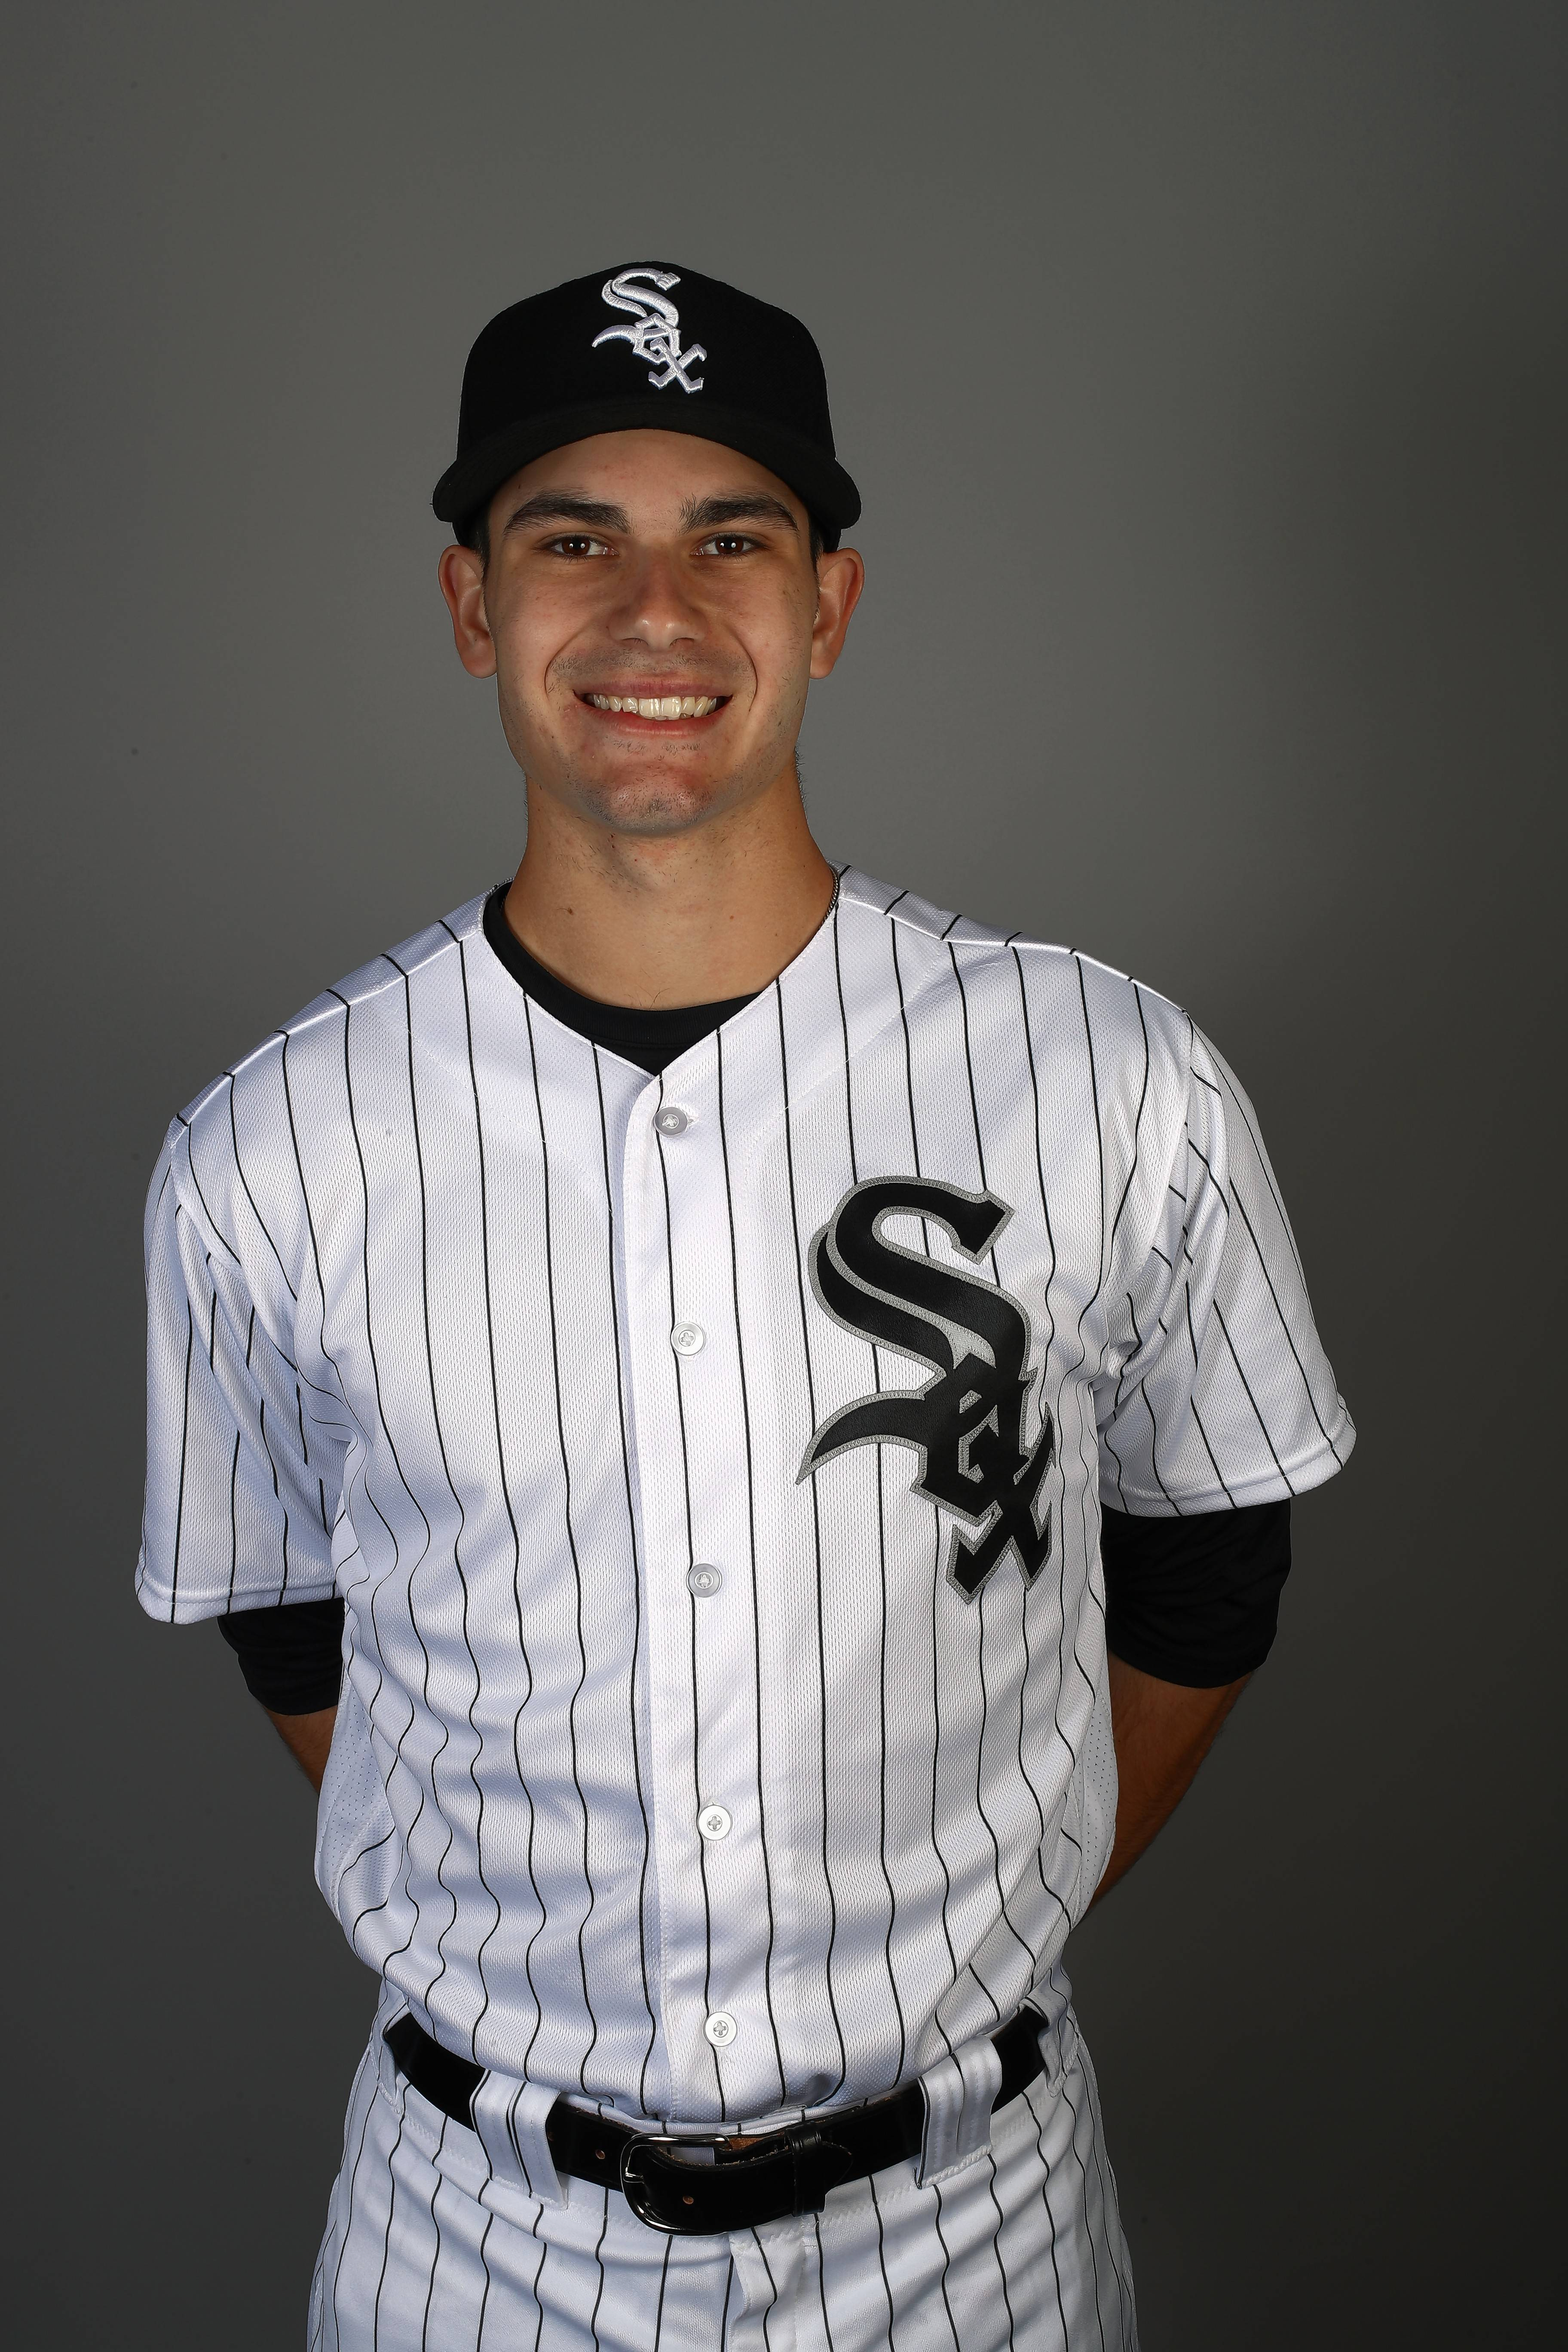 Right-handed pitcher Dylan Cease has been promoted to Class AA Birmingham after going 9-2 in 13 starts with Winston-Salem.